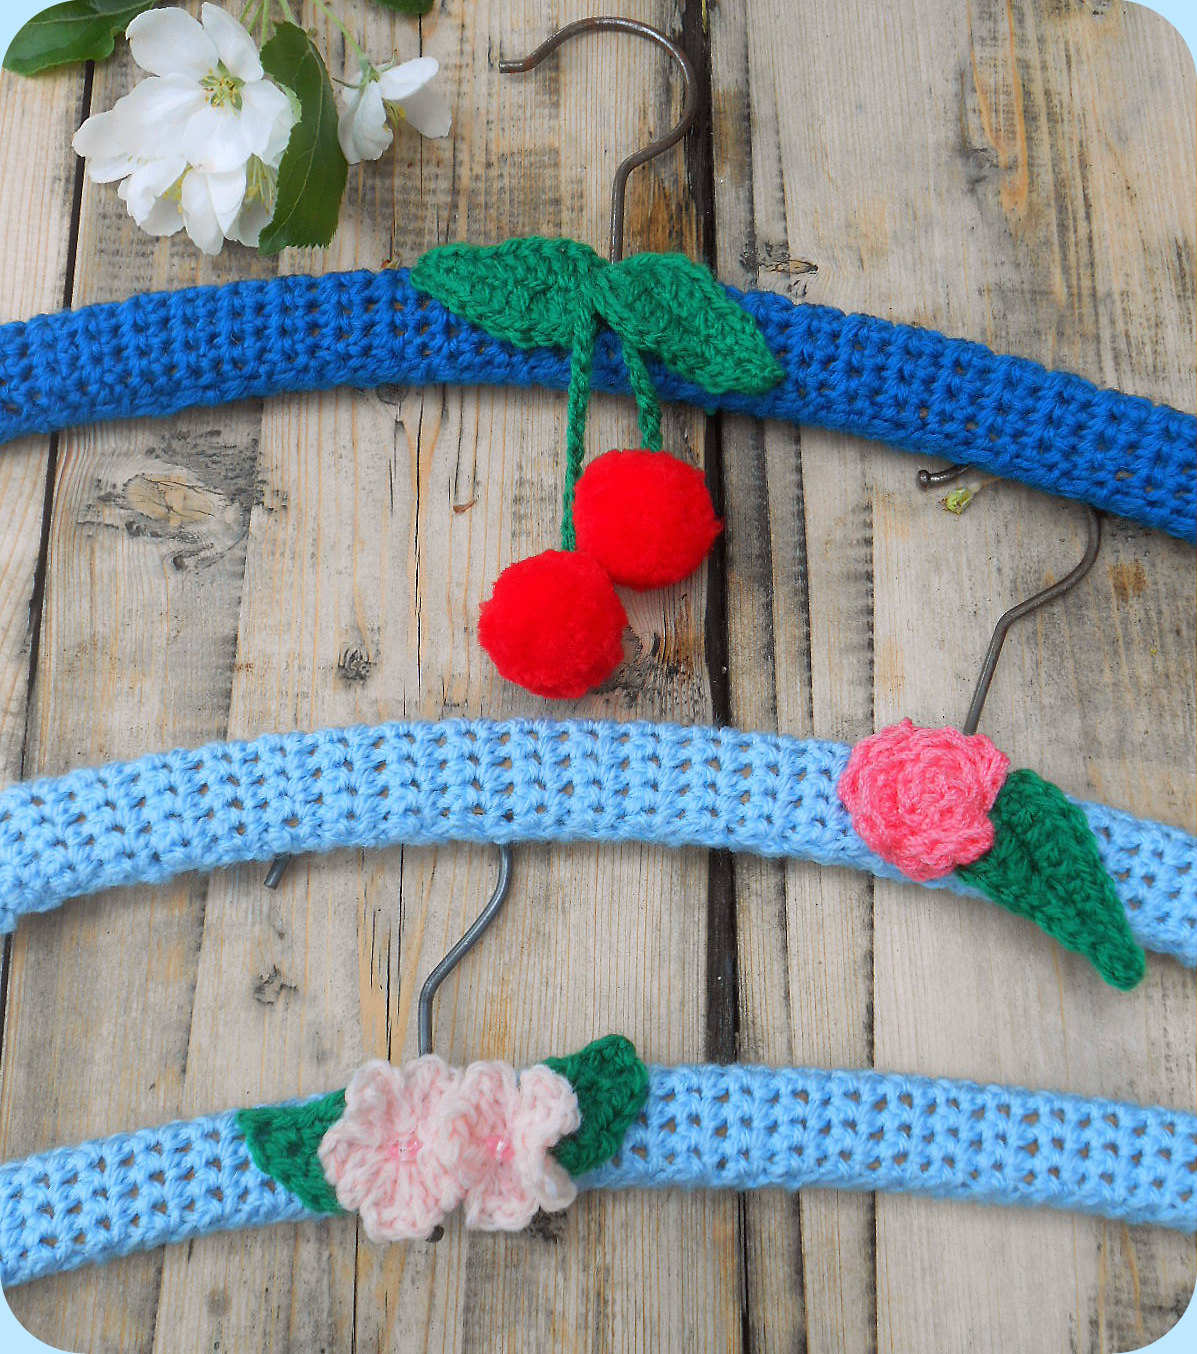 A Simple Crochet Coat Hanger Diy Tutorial Lazy Daisy Jones